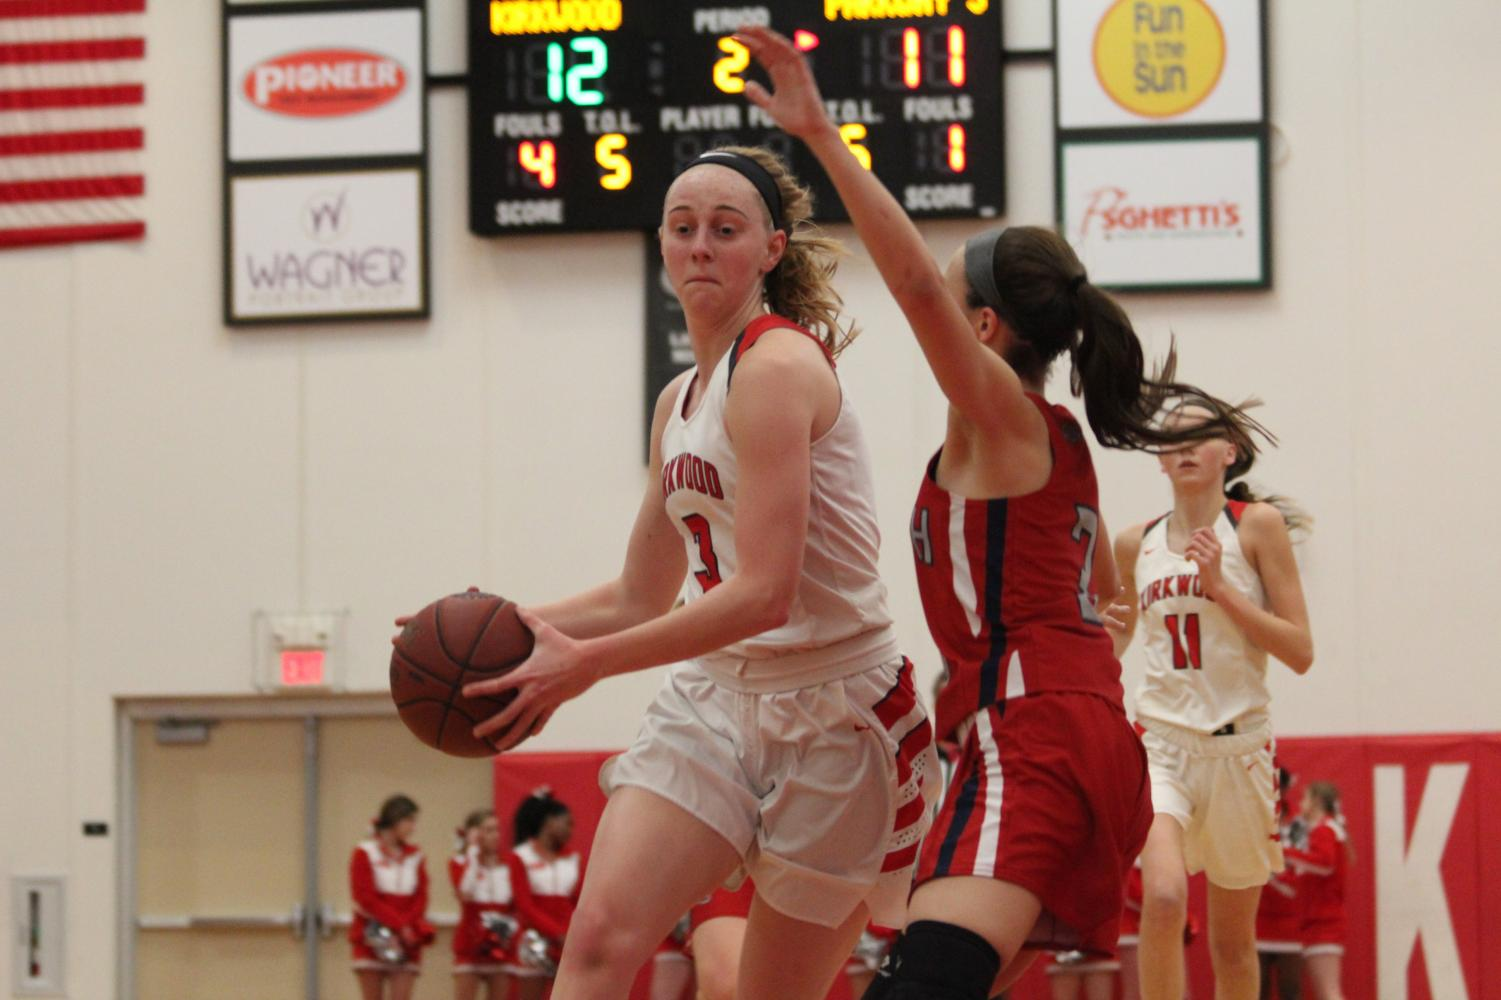 During+the+girls%E2%80%99+basketball+game%2C+Natalie+Bruns%2C+junior%2C+drives+past+the+defender+to+get+to+the+basket+Feb.+12.